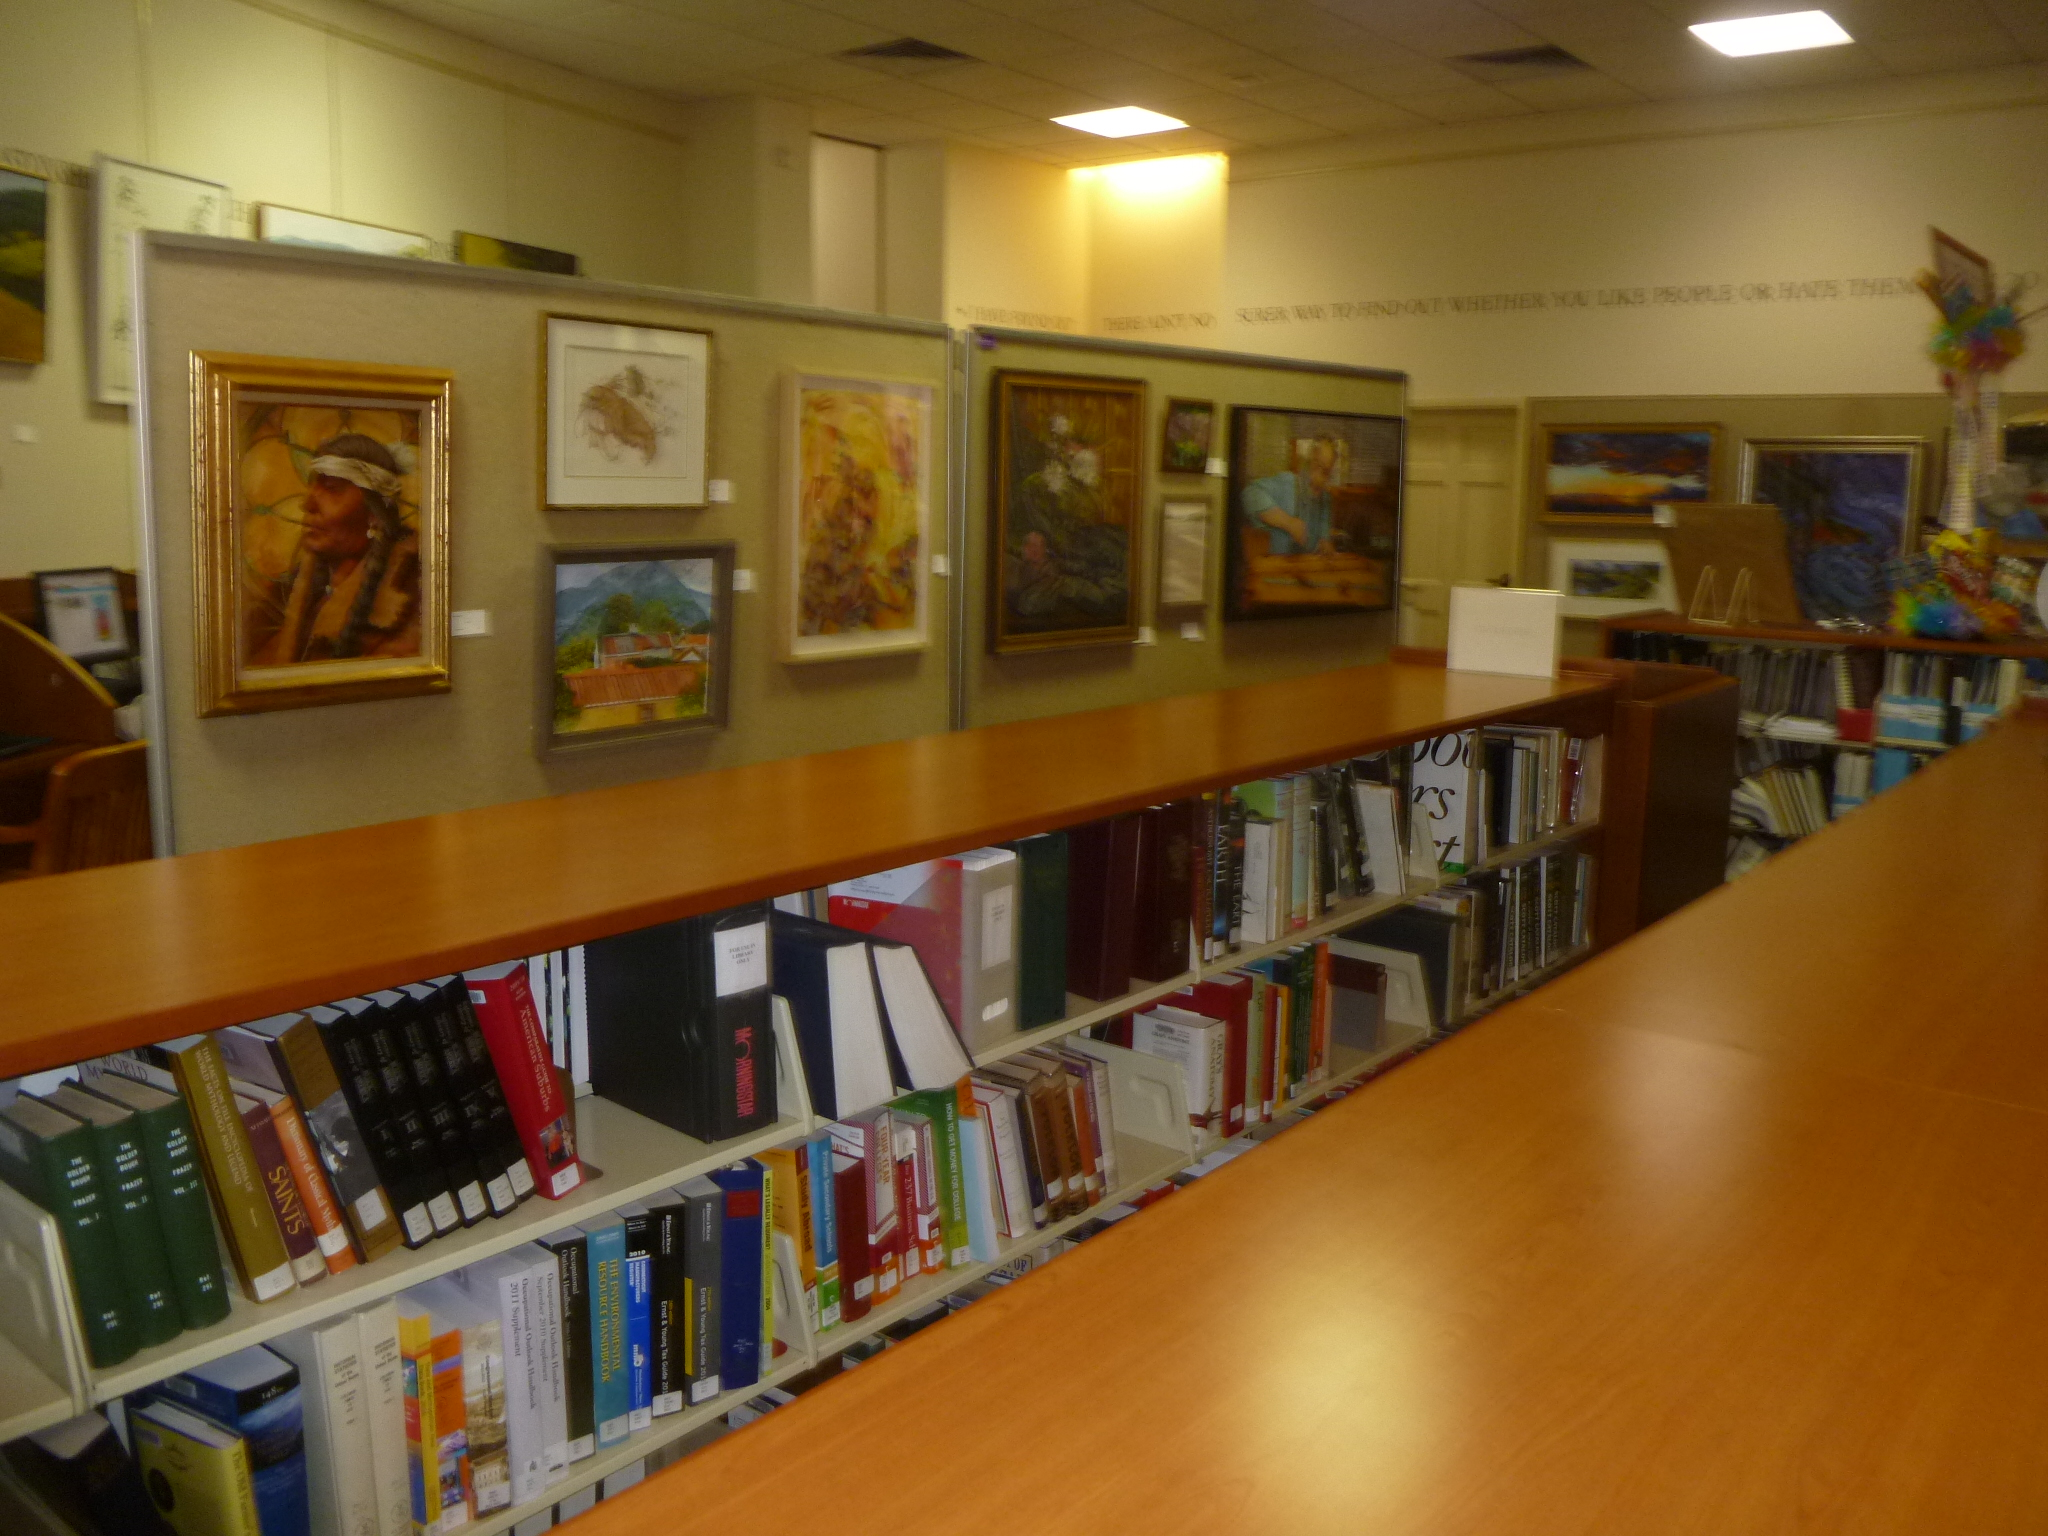 Paintings and other works of art are on display and for sale at the Mark Twain Library Art Show this week.